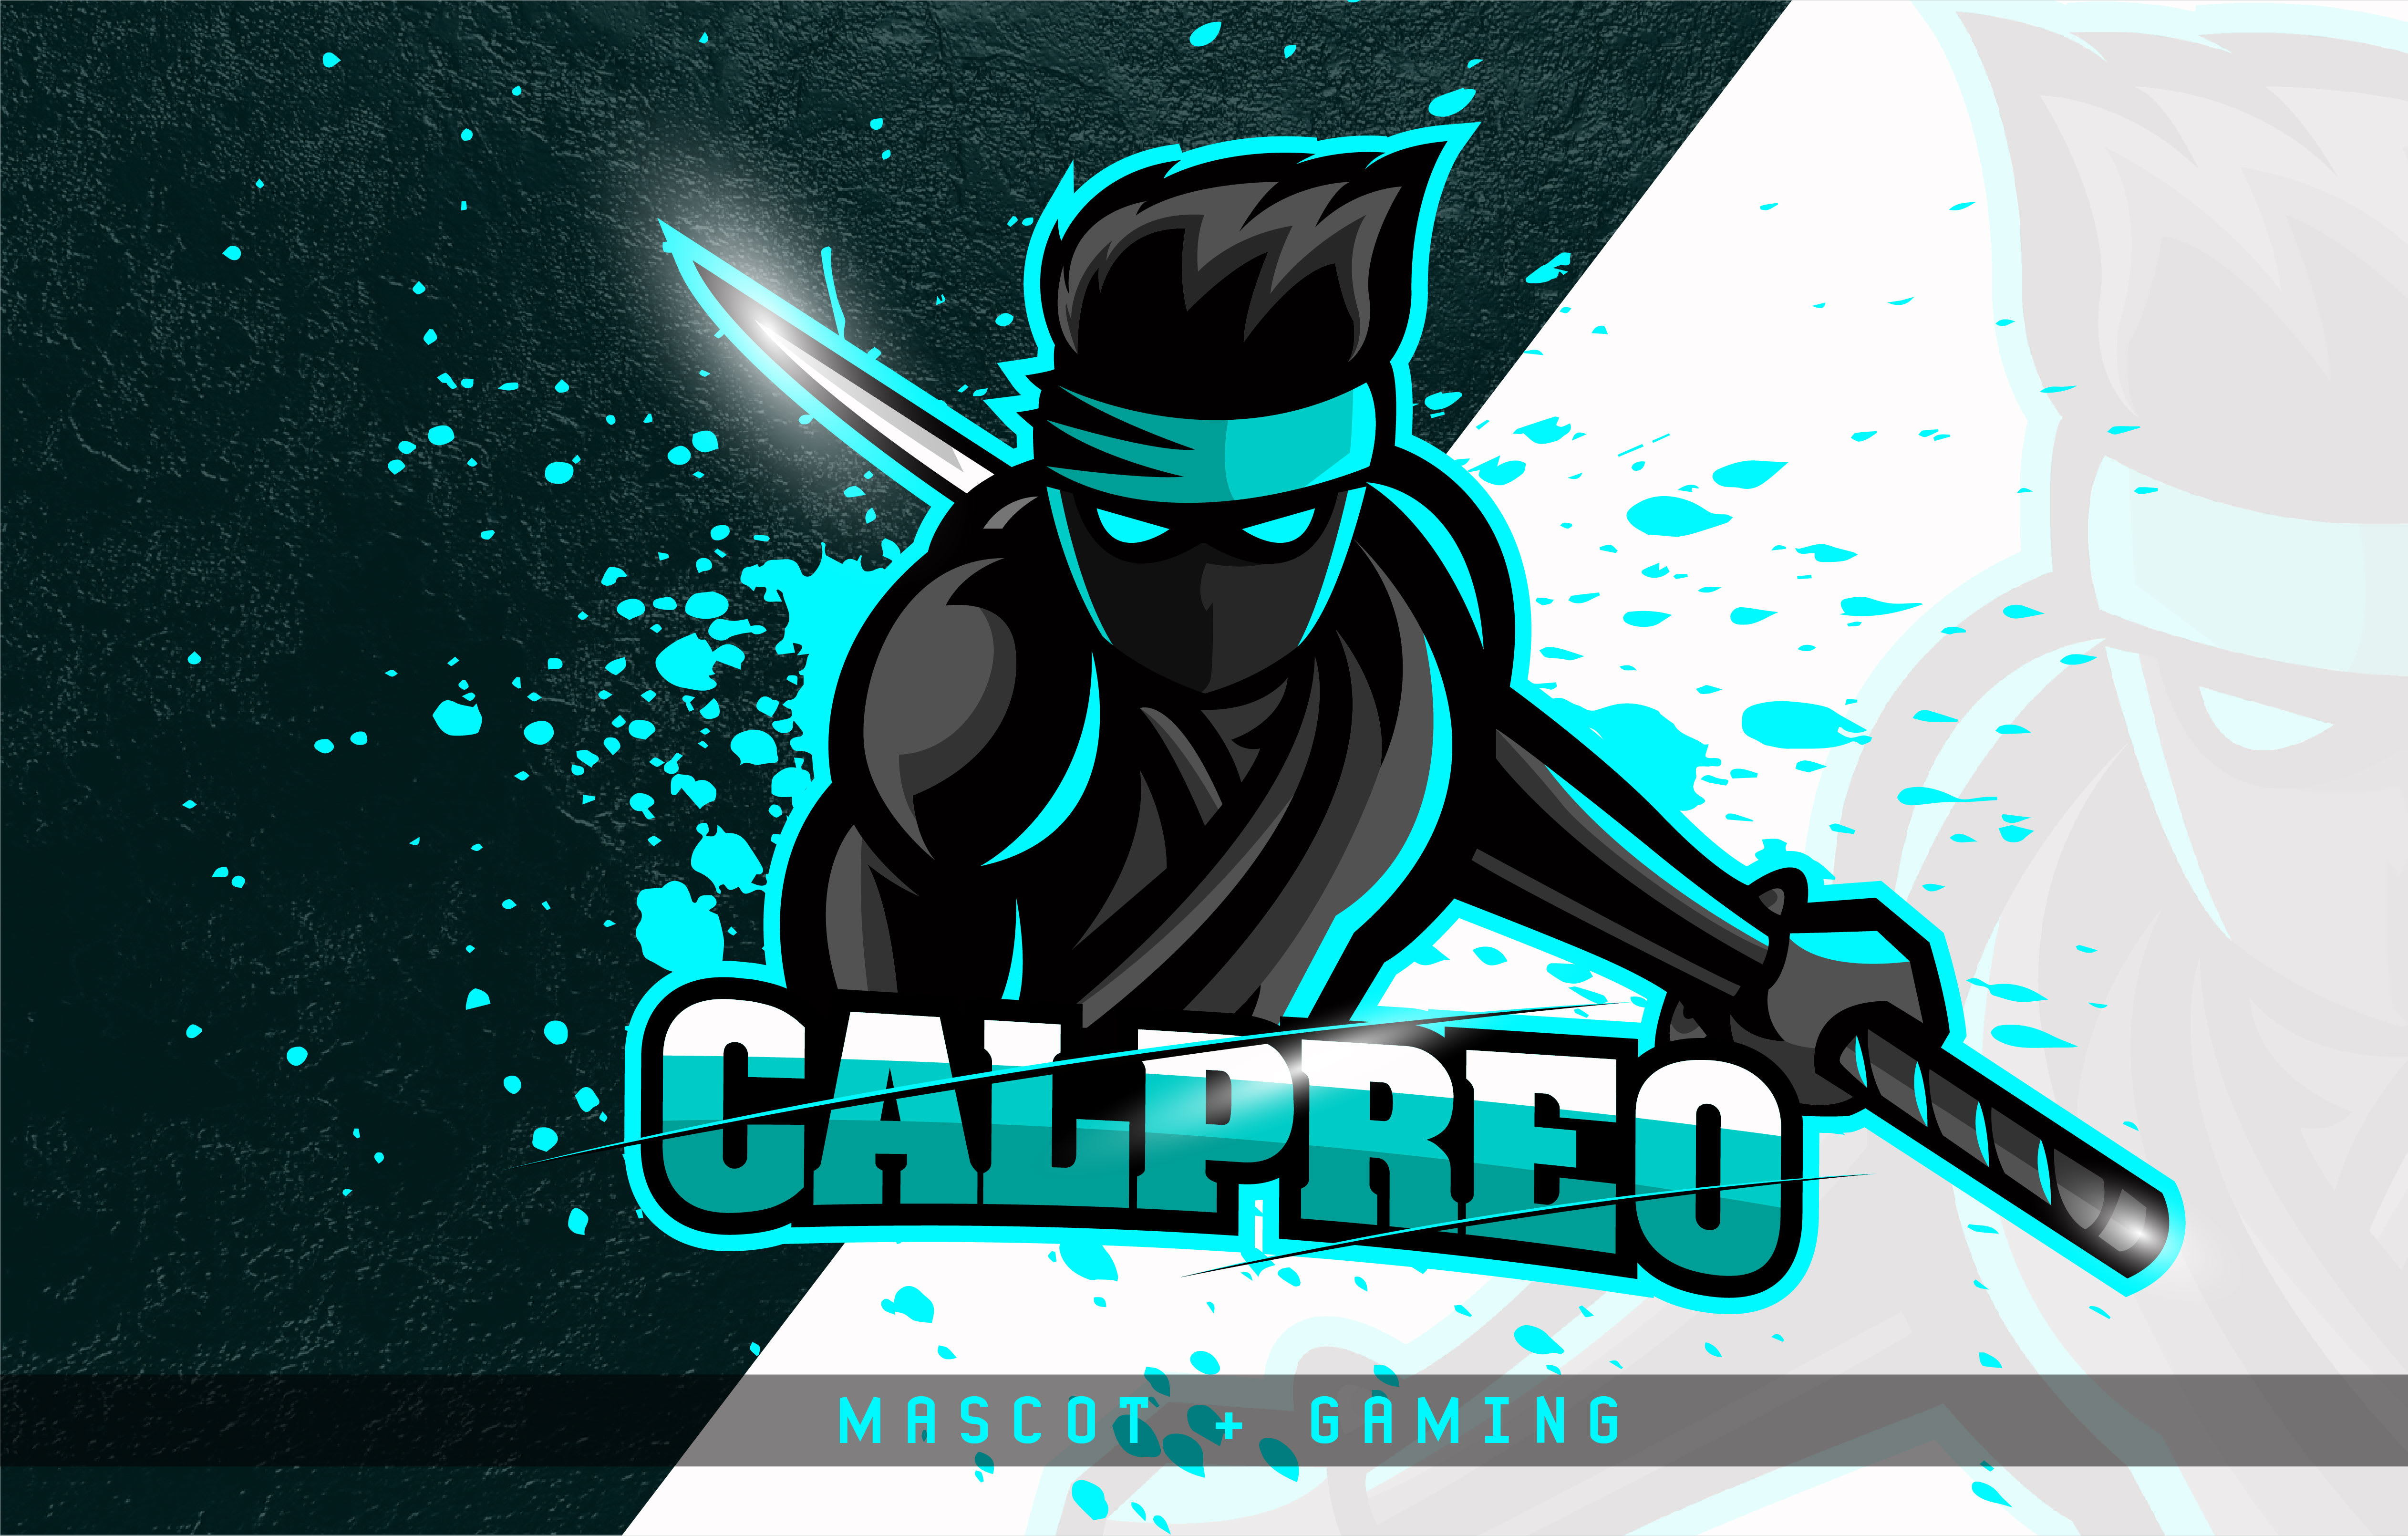 Do stream, esports, mascot, twitch and gaming logo by Calpreo